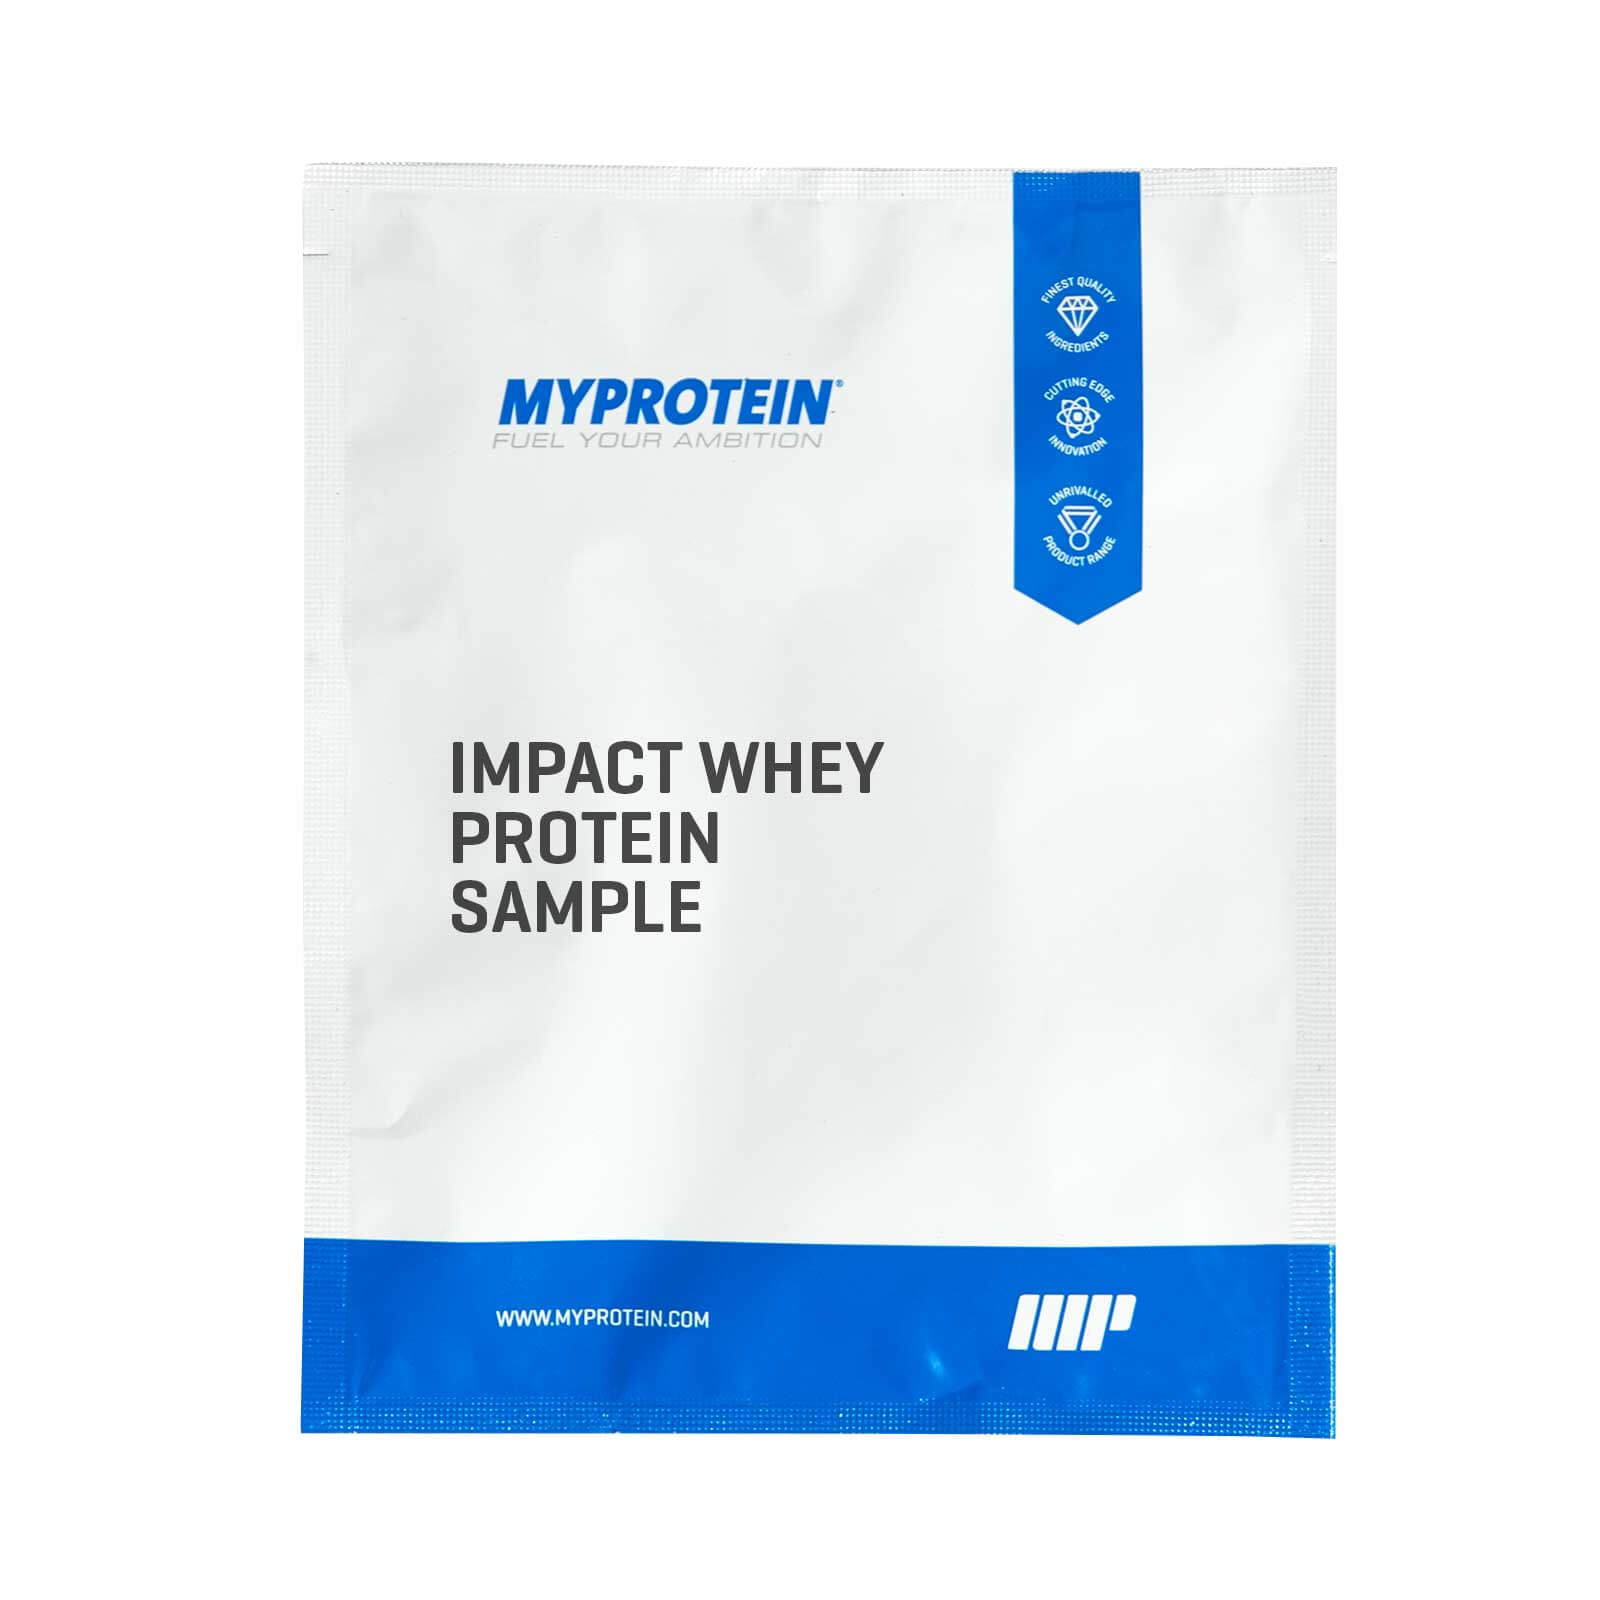 Impact Whey Protein (Sample) - Chocolate Nut - 25g